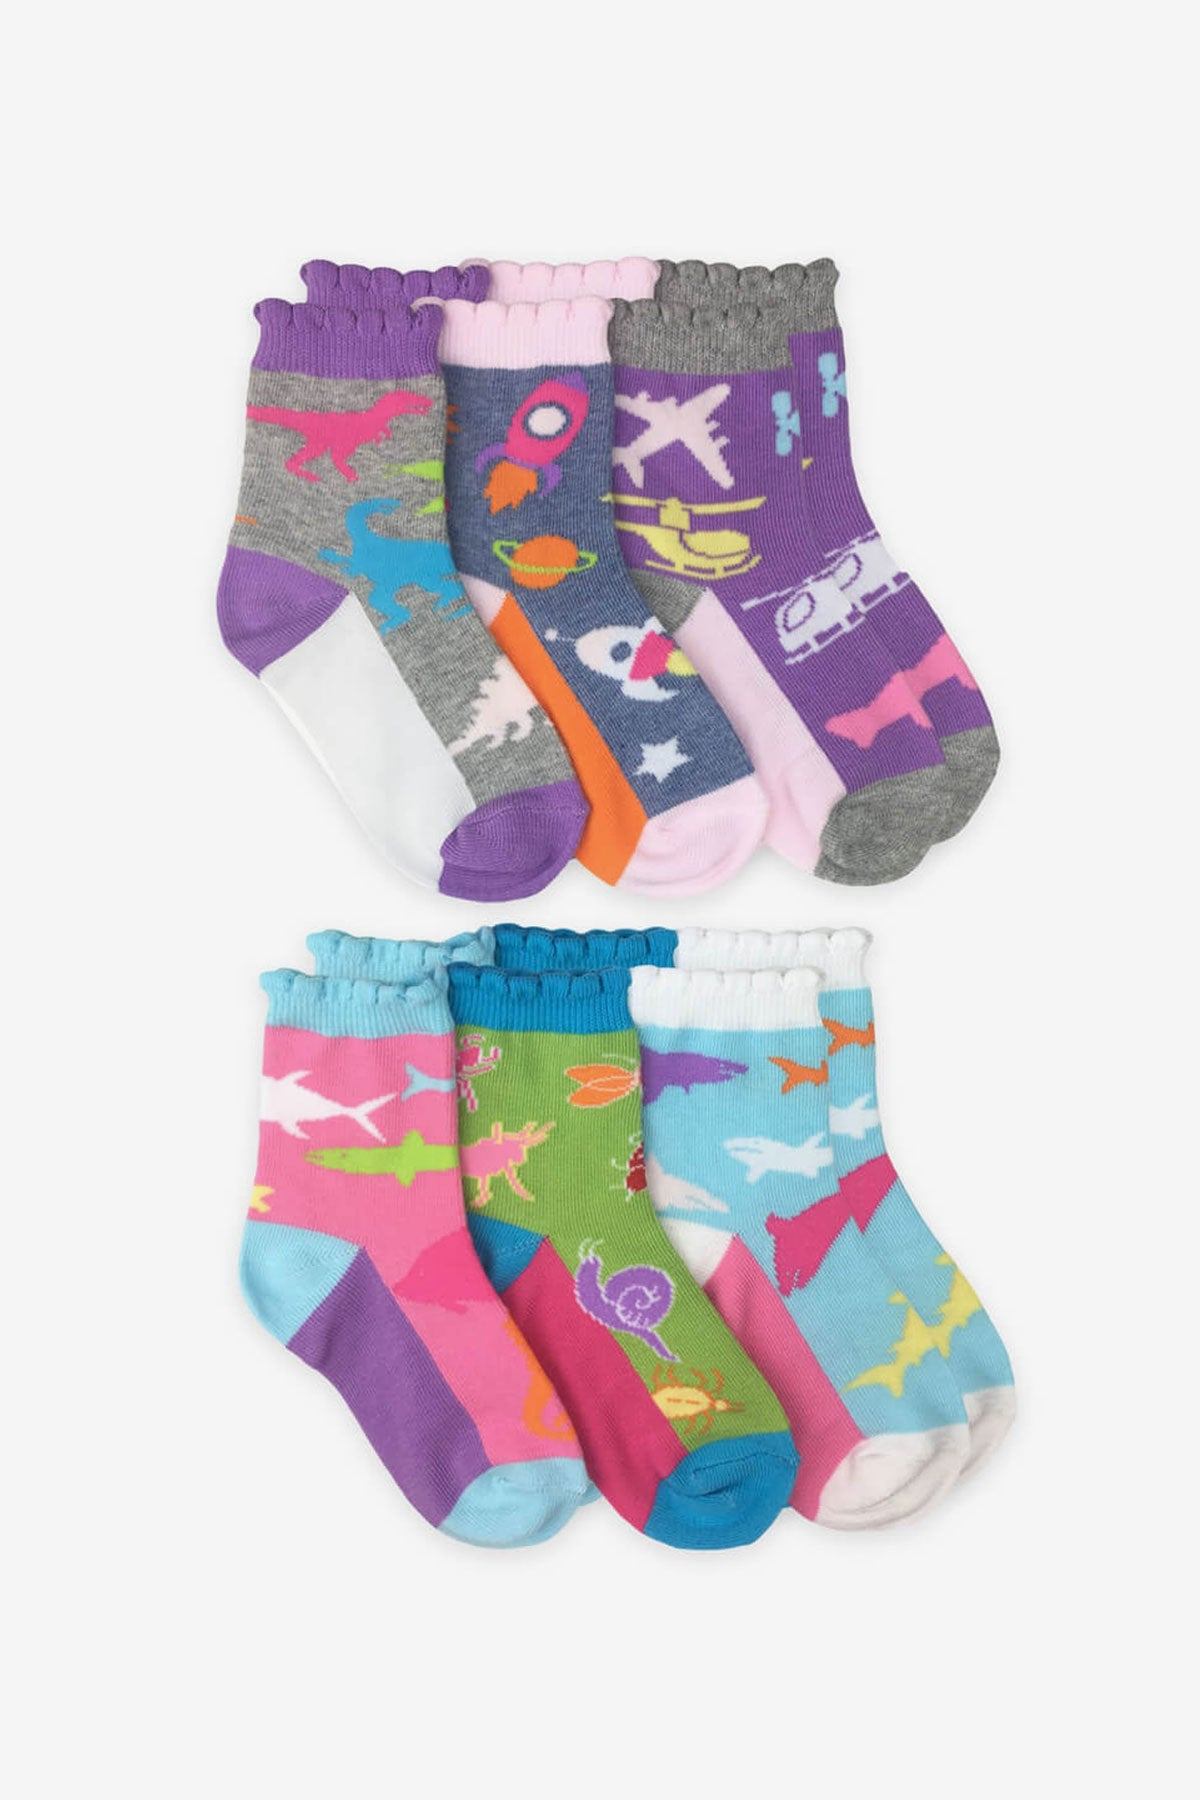 Jefferies Socks Girls Rock Crew Socks 6-Pack